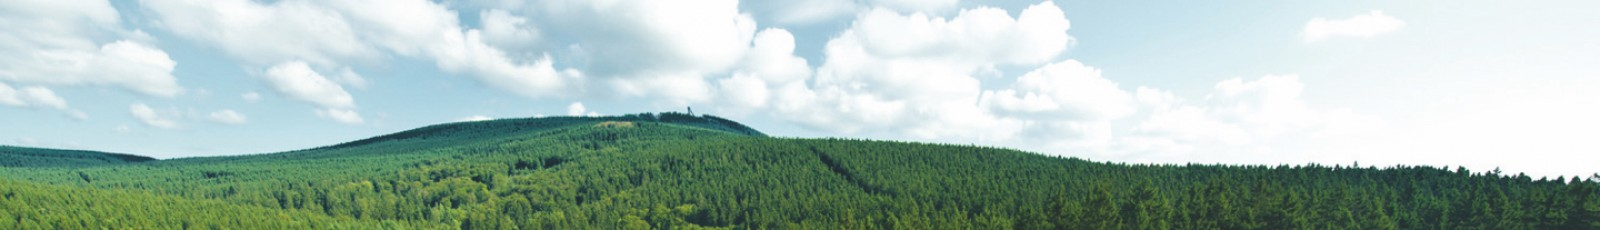 03 biedermann header harz